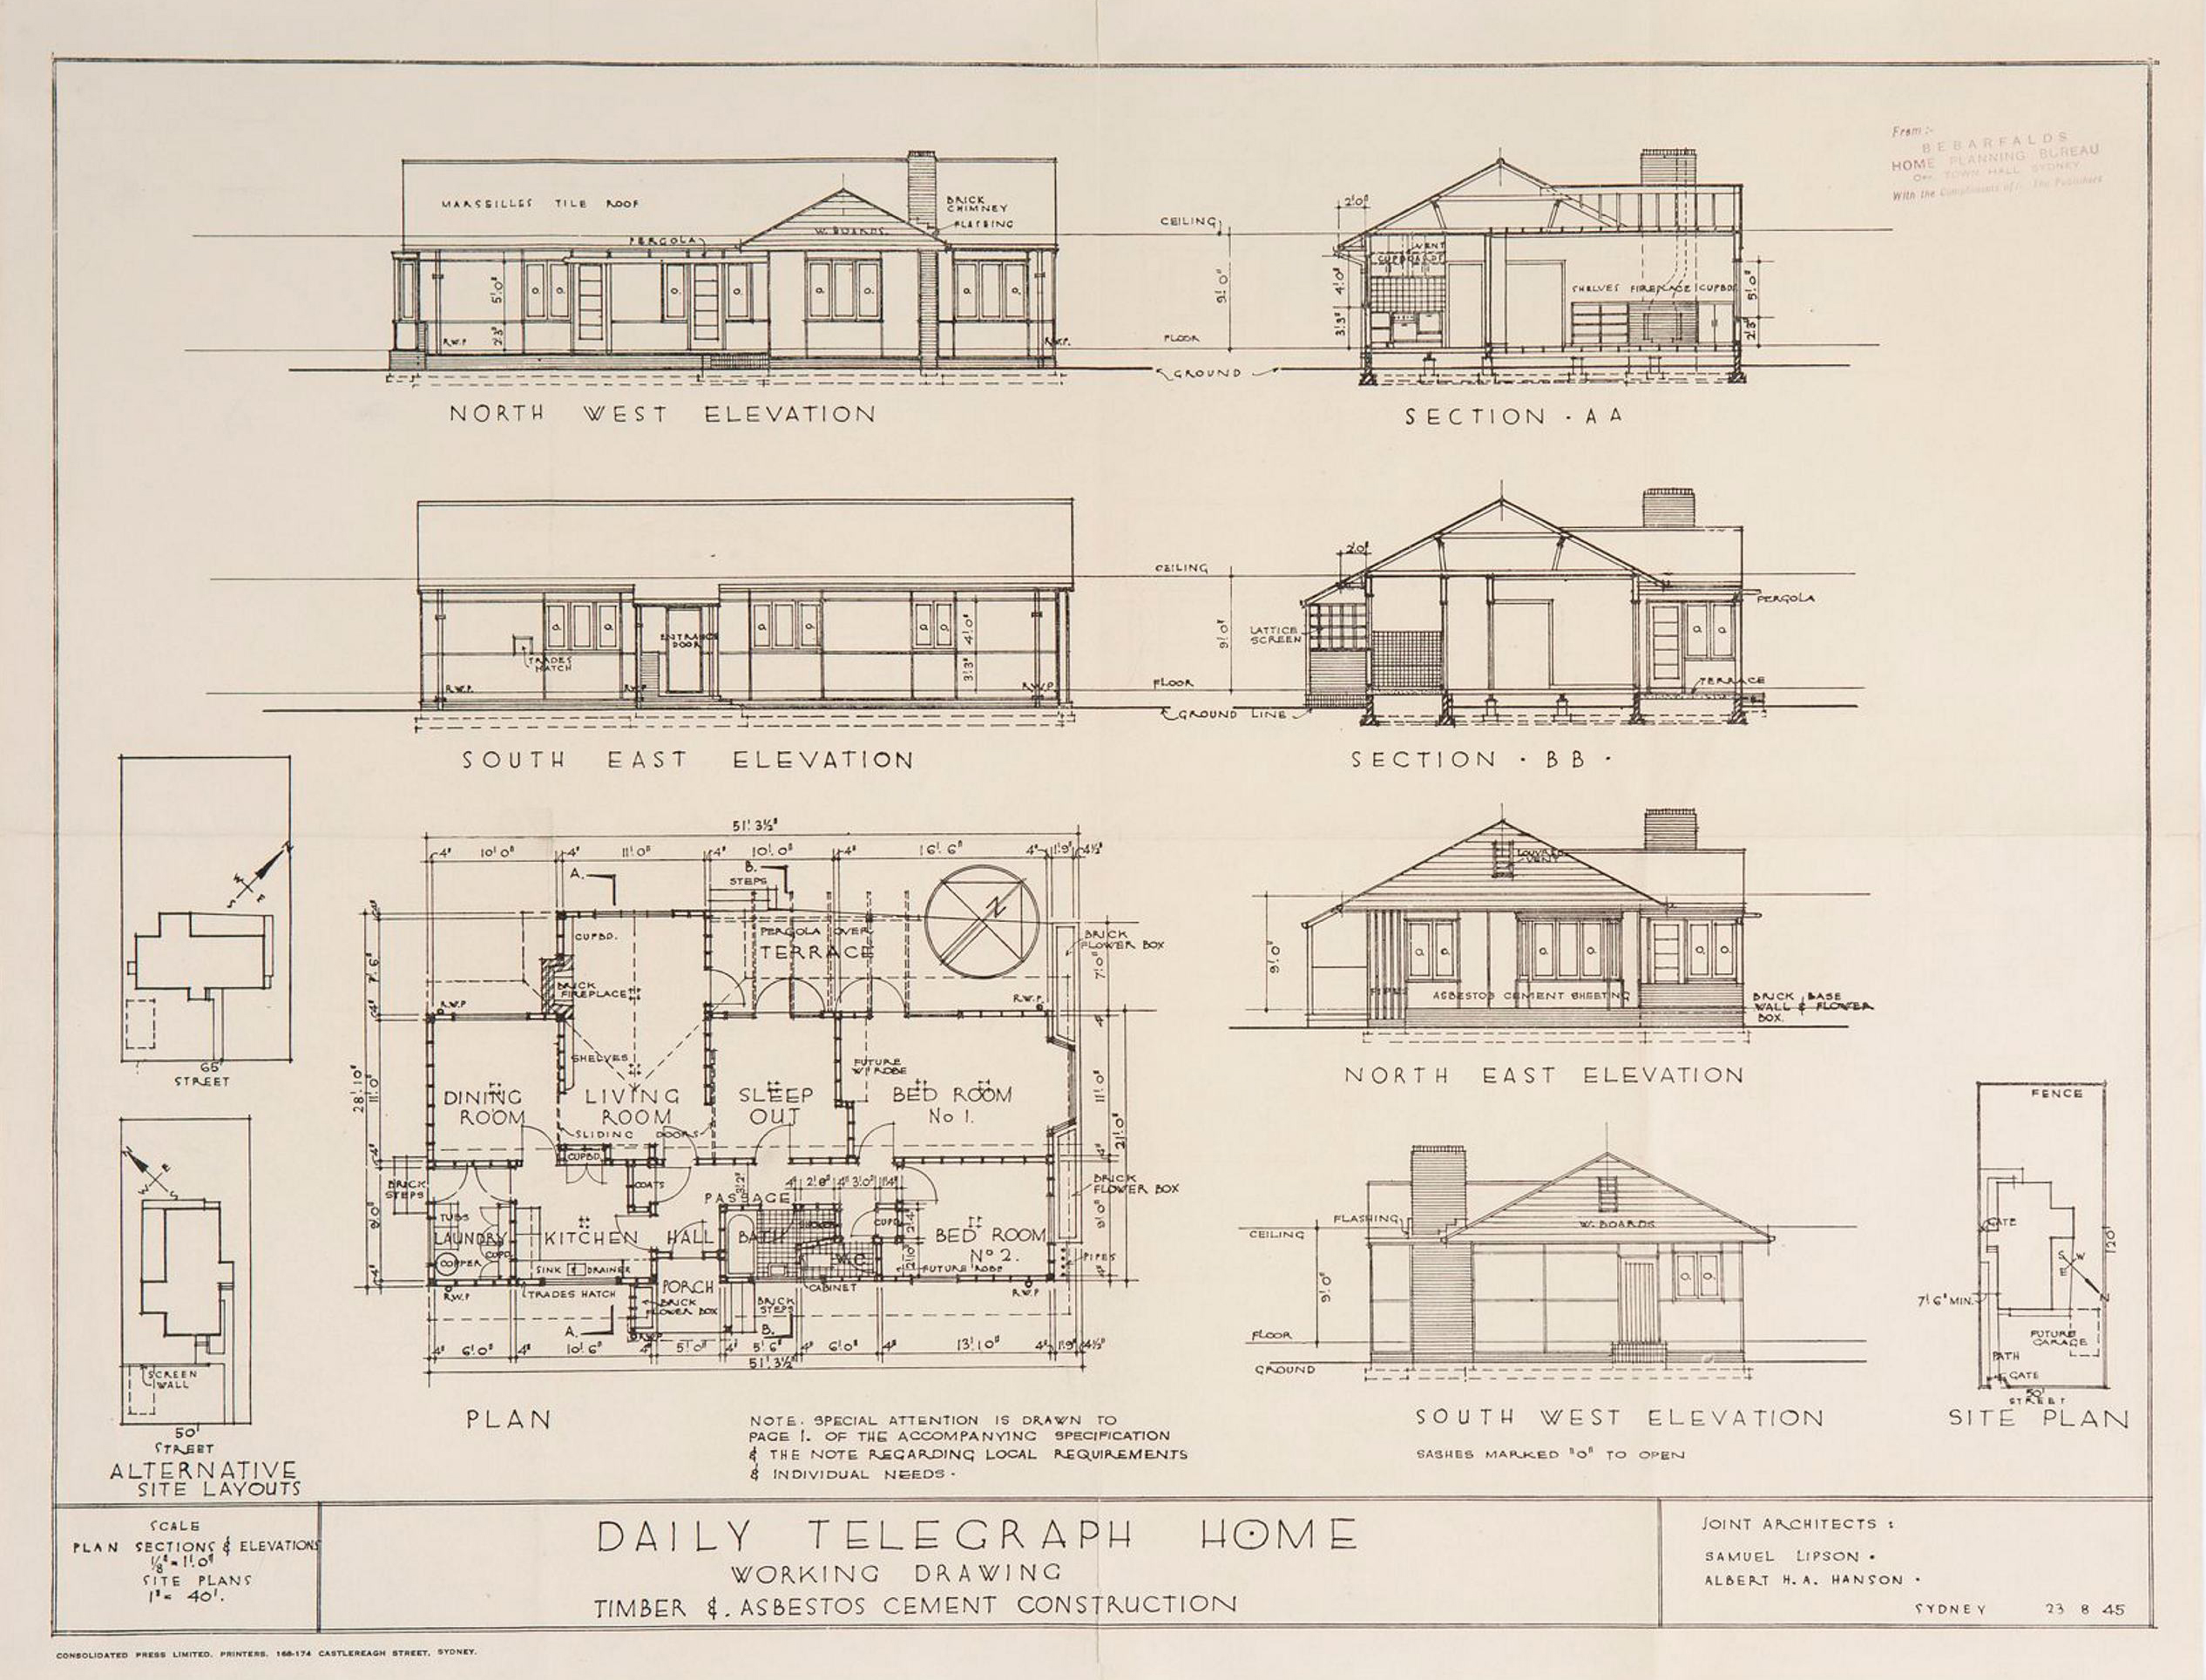 Californian Bungalow Floor Plans Post War Sydney Home Plans 1945 To 1959 Sydney Living